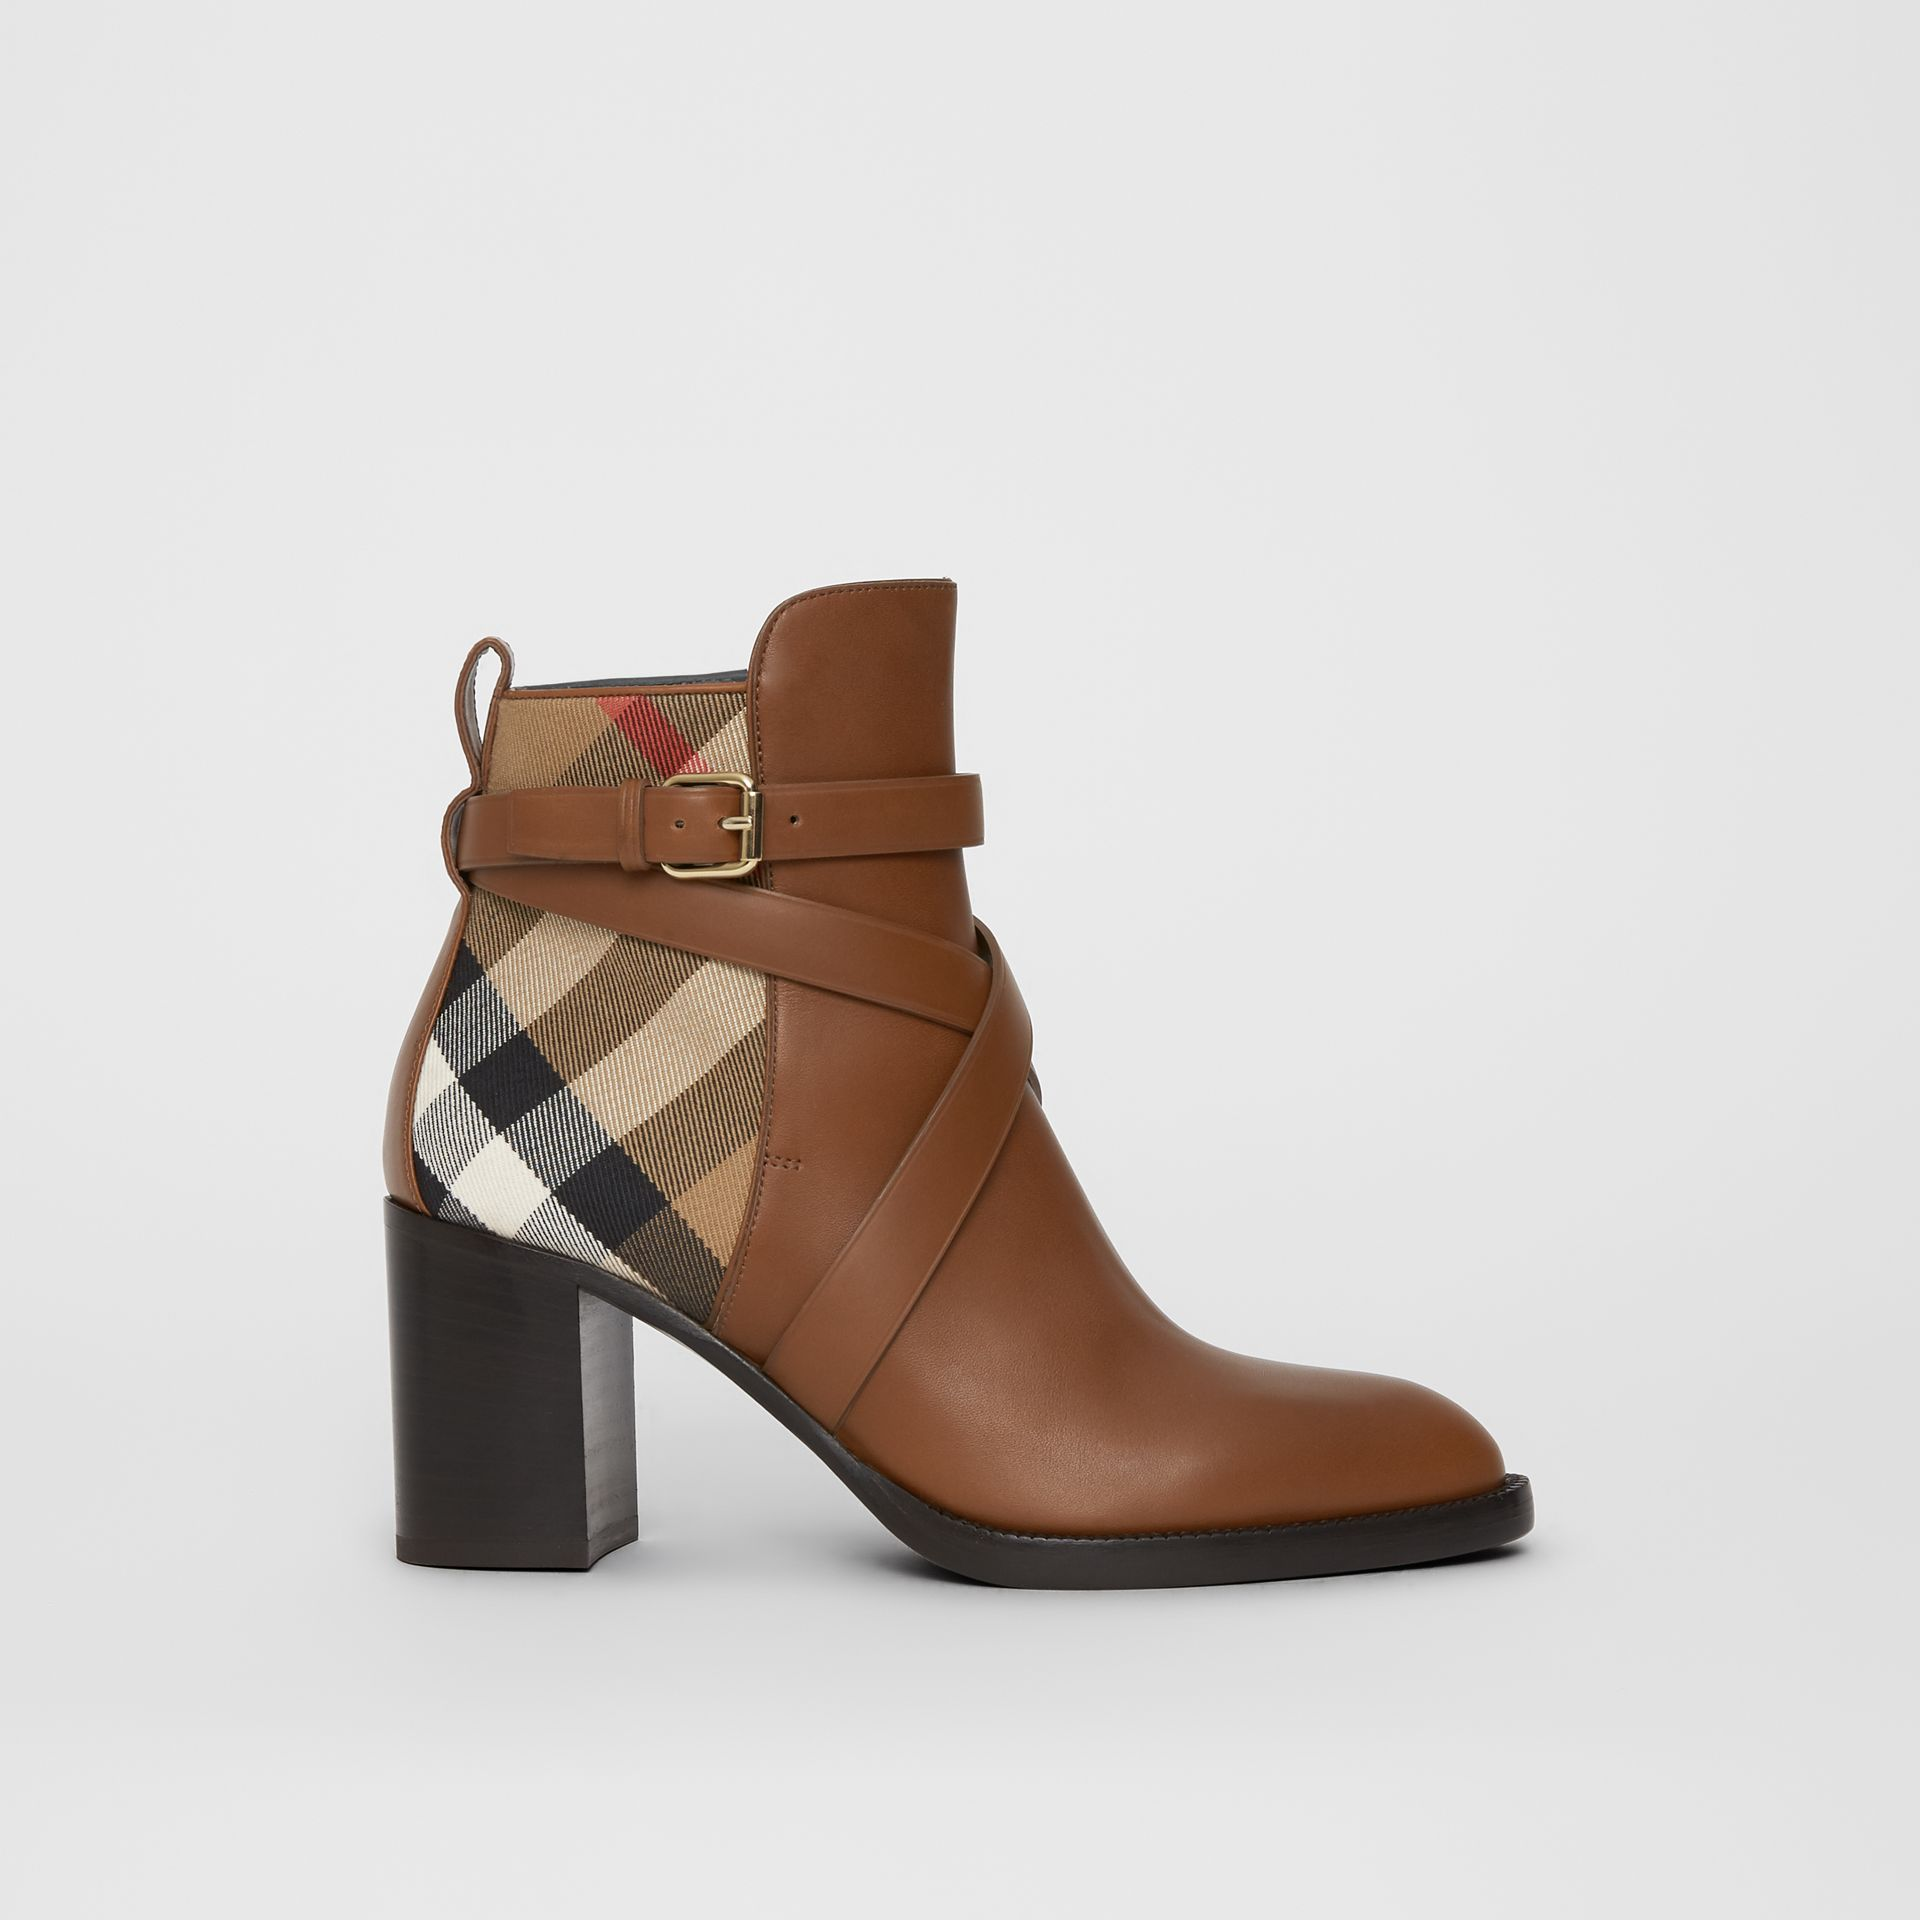 House Check and Leather Ankle Boots in Bright Camel - Women | Burberry United States - gallery image 5